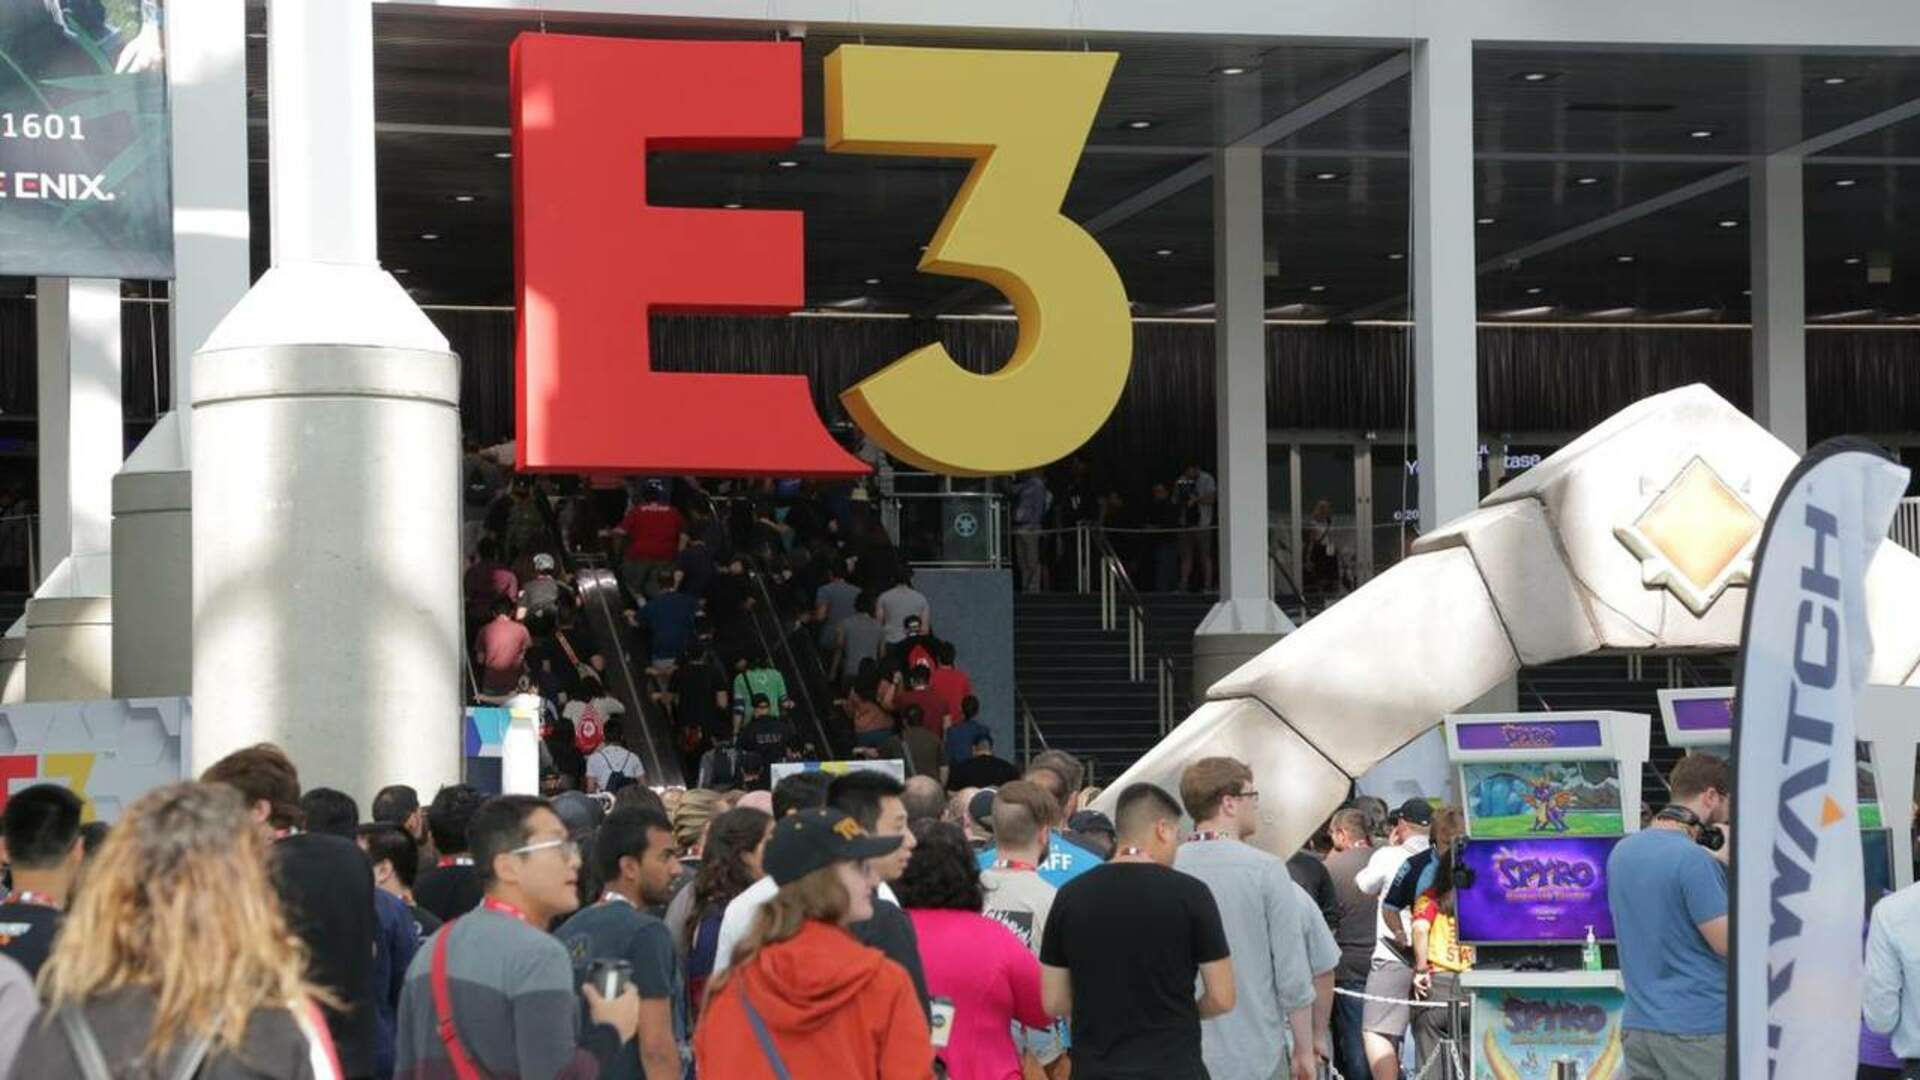 E3 2020 Participant List Leaks After Affirmations of Increased Cybersecurity